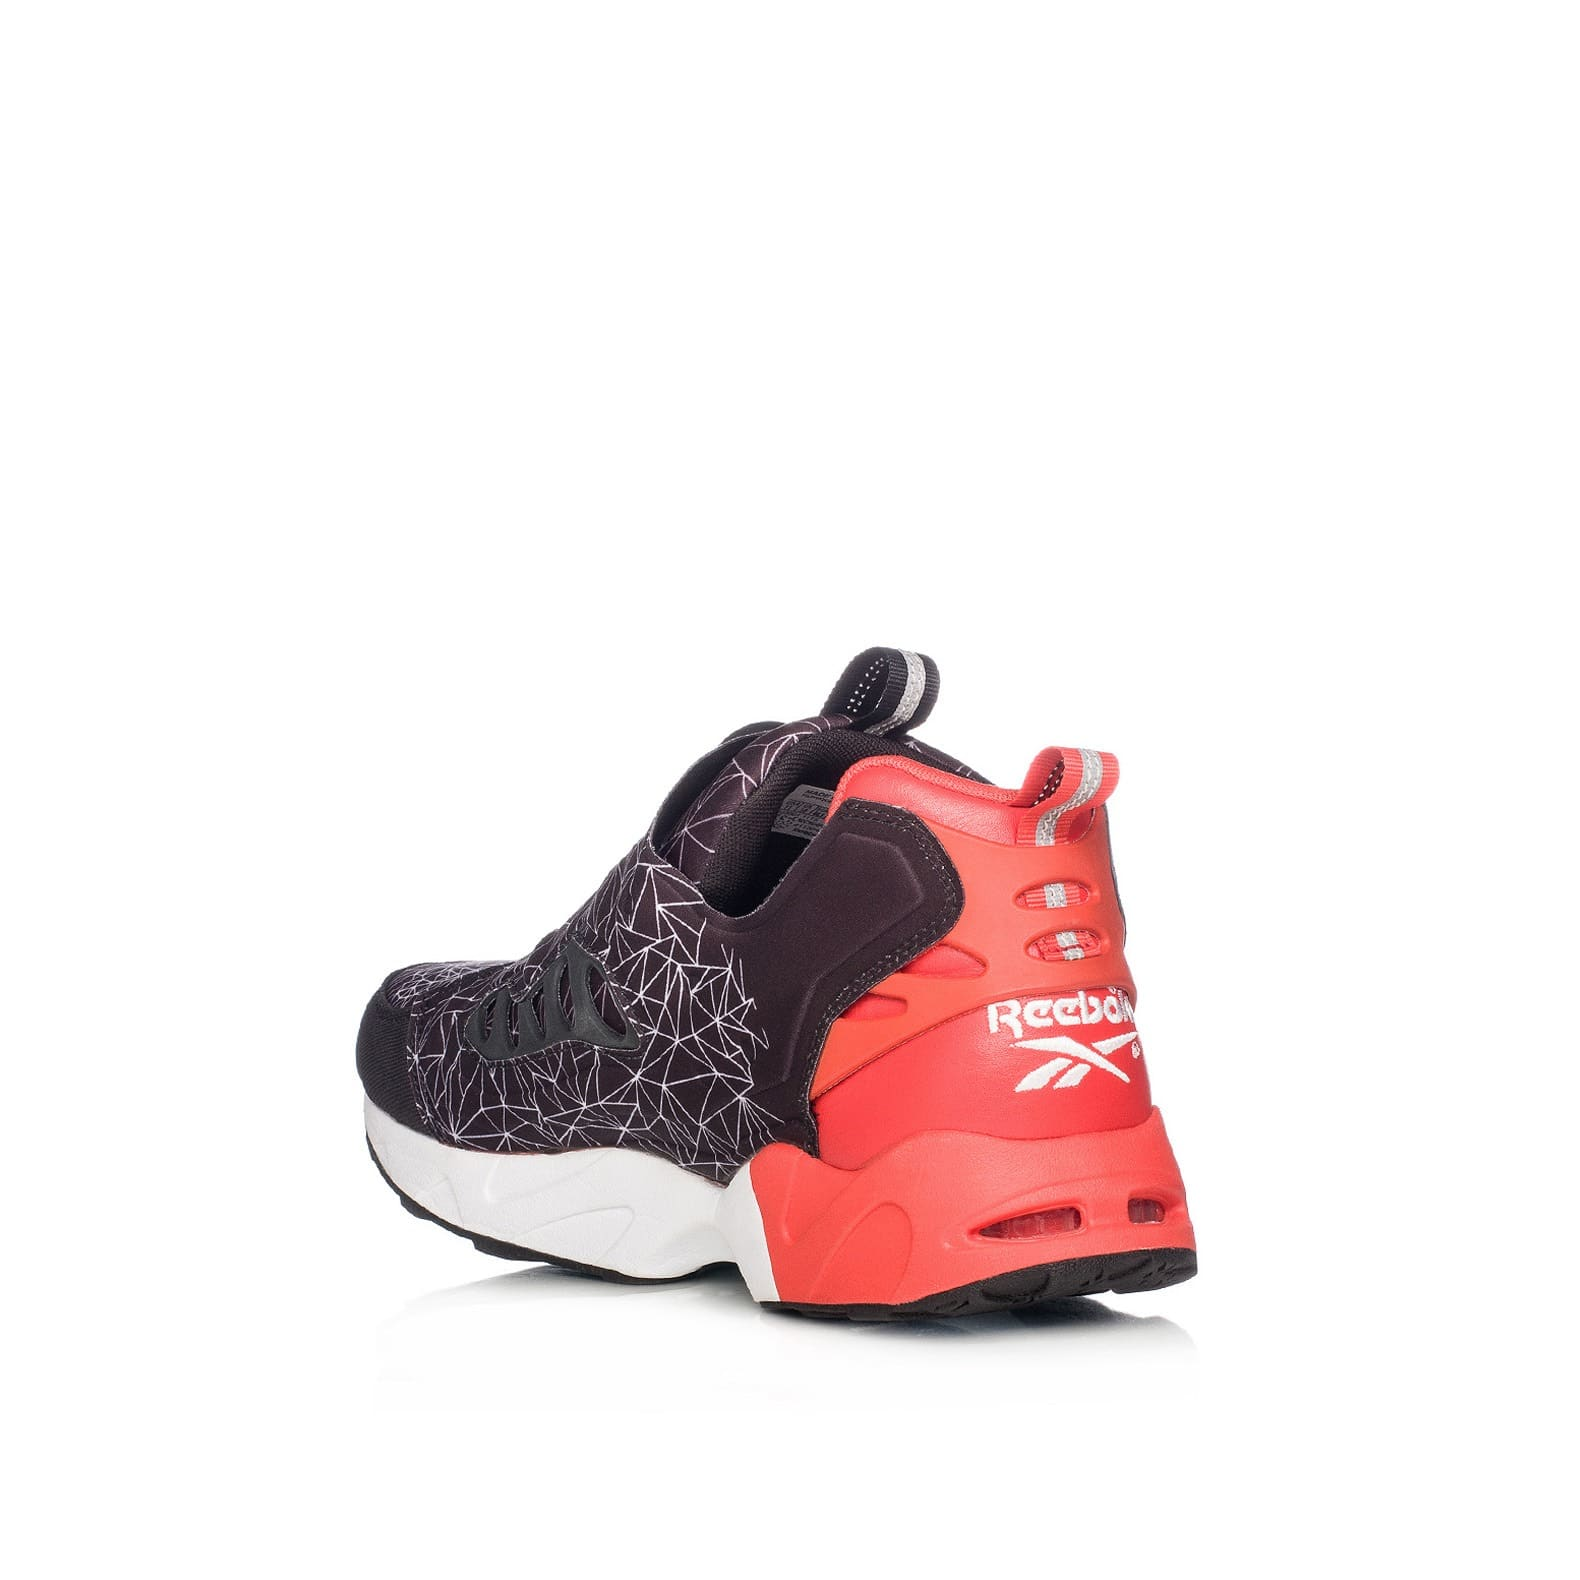 reebok-insta-pump-fury-road-chinese-new-year